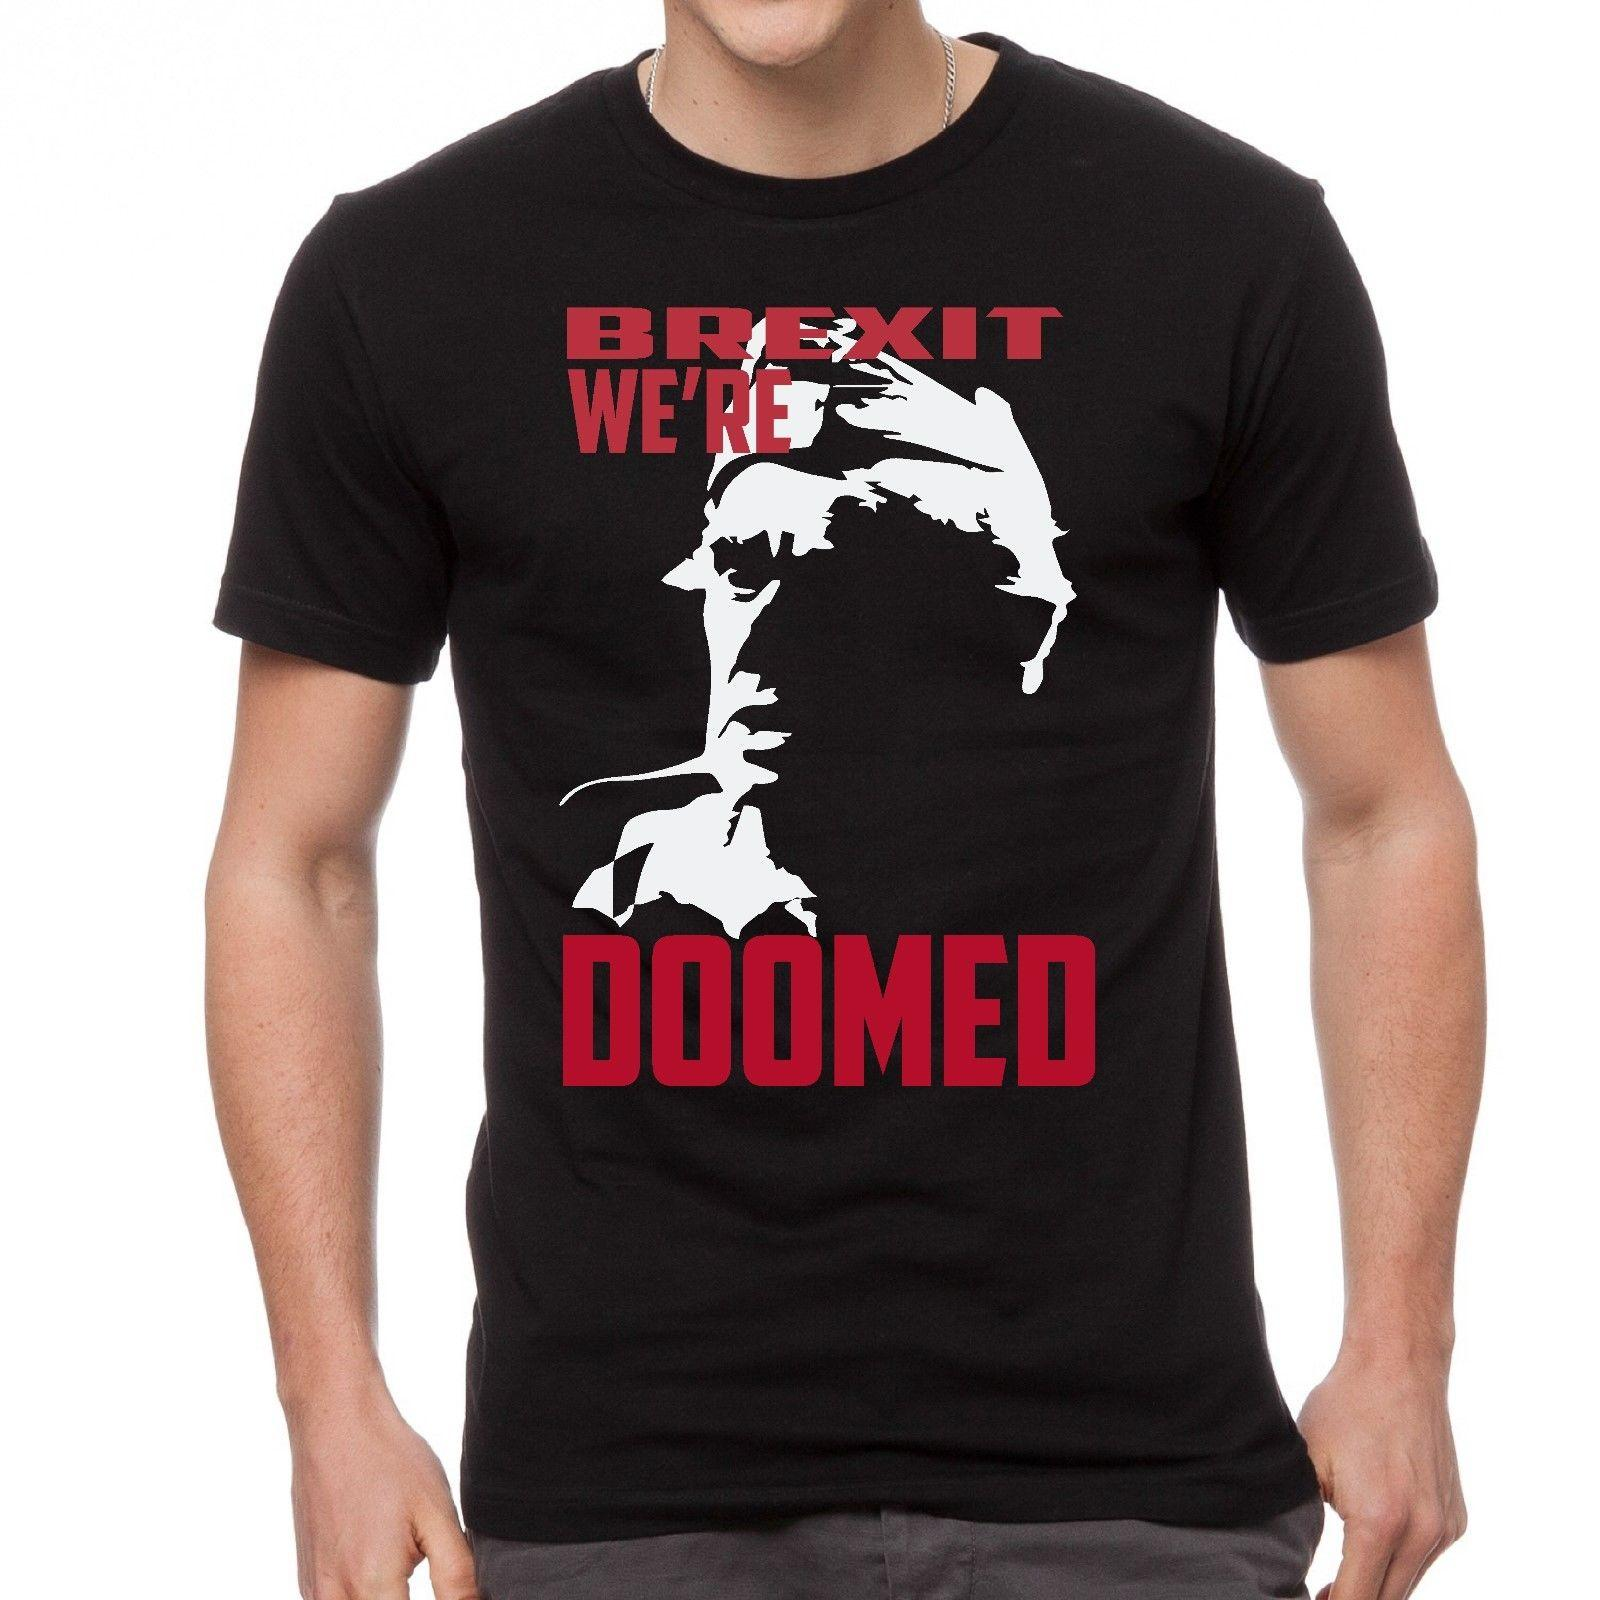 012085c50 NEW DADS ARMY FRASER BREXIT WE'RE DOOMED T-SHIRT Funny free shipping Unisex Casual  tee gift